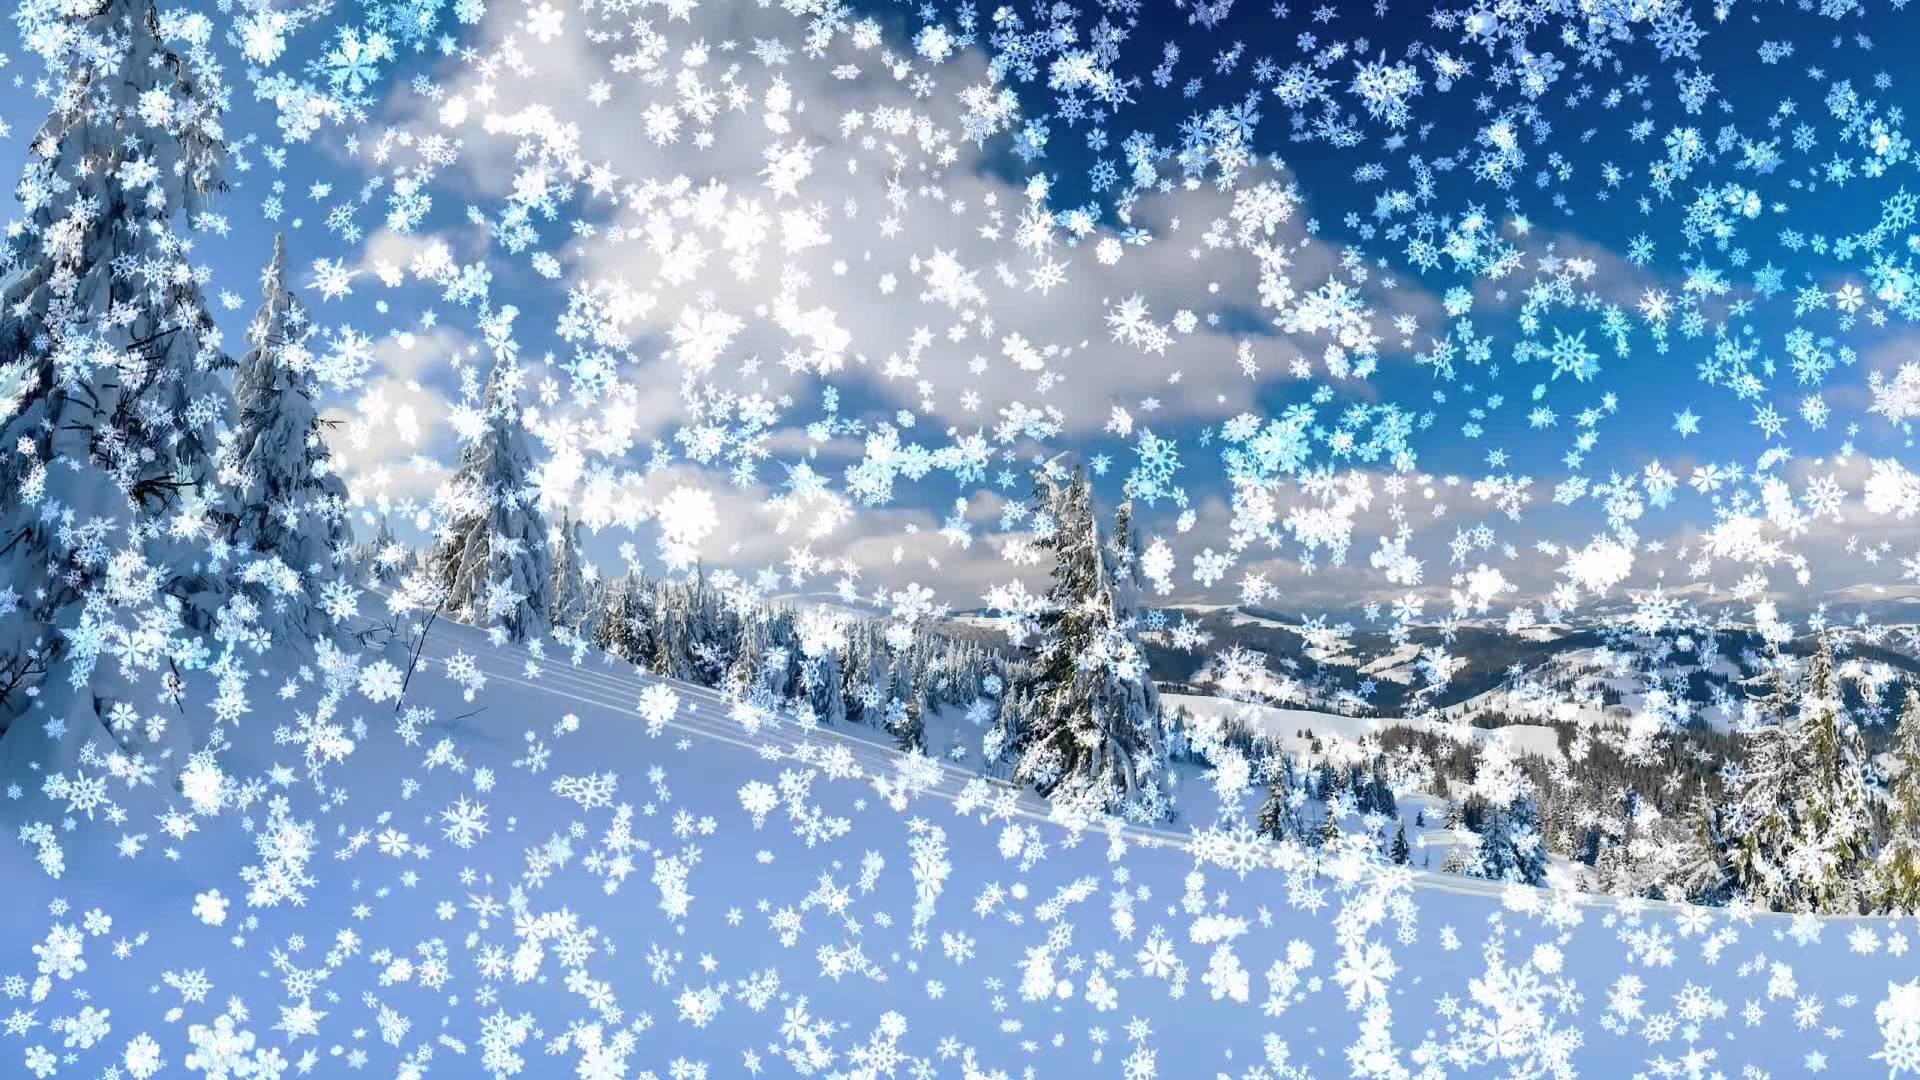 android live snow wallpaper 31 images